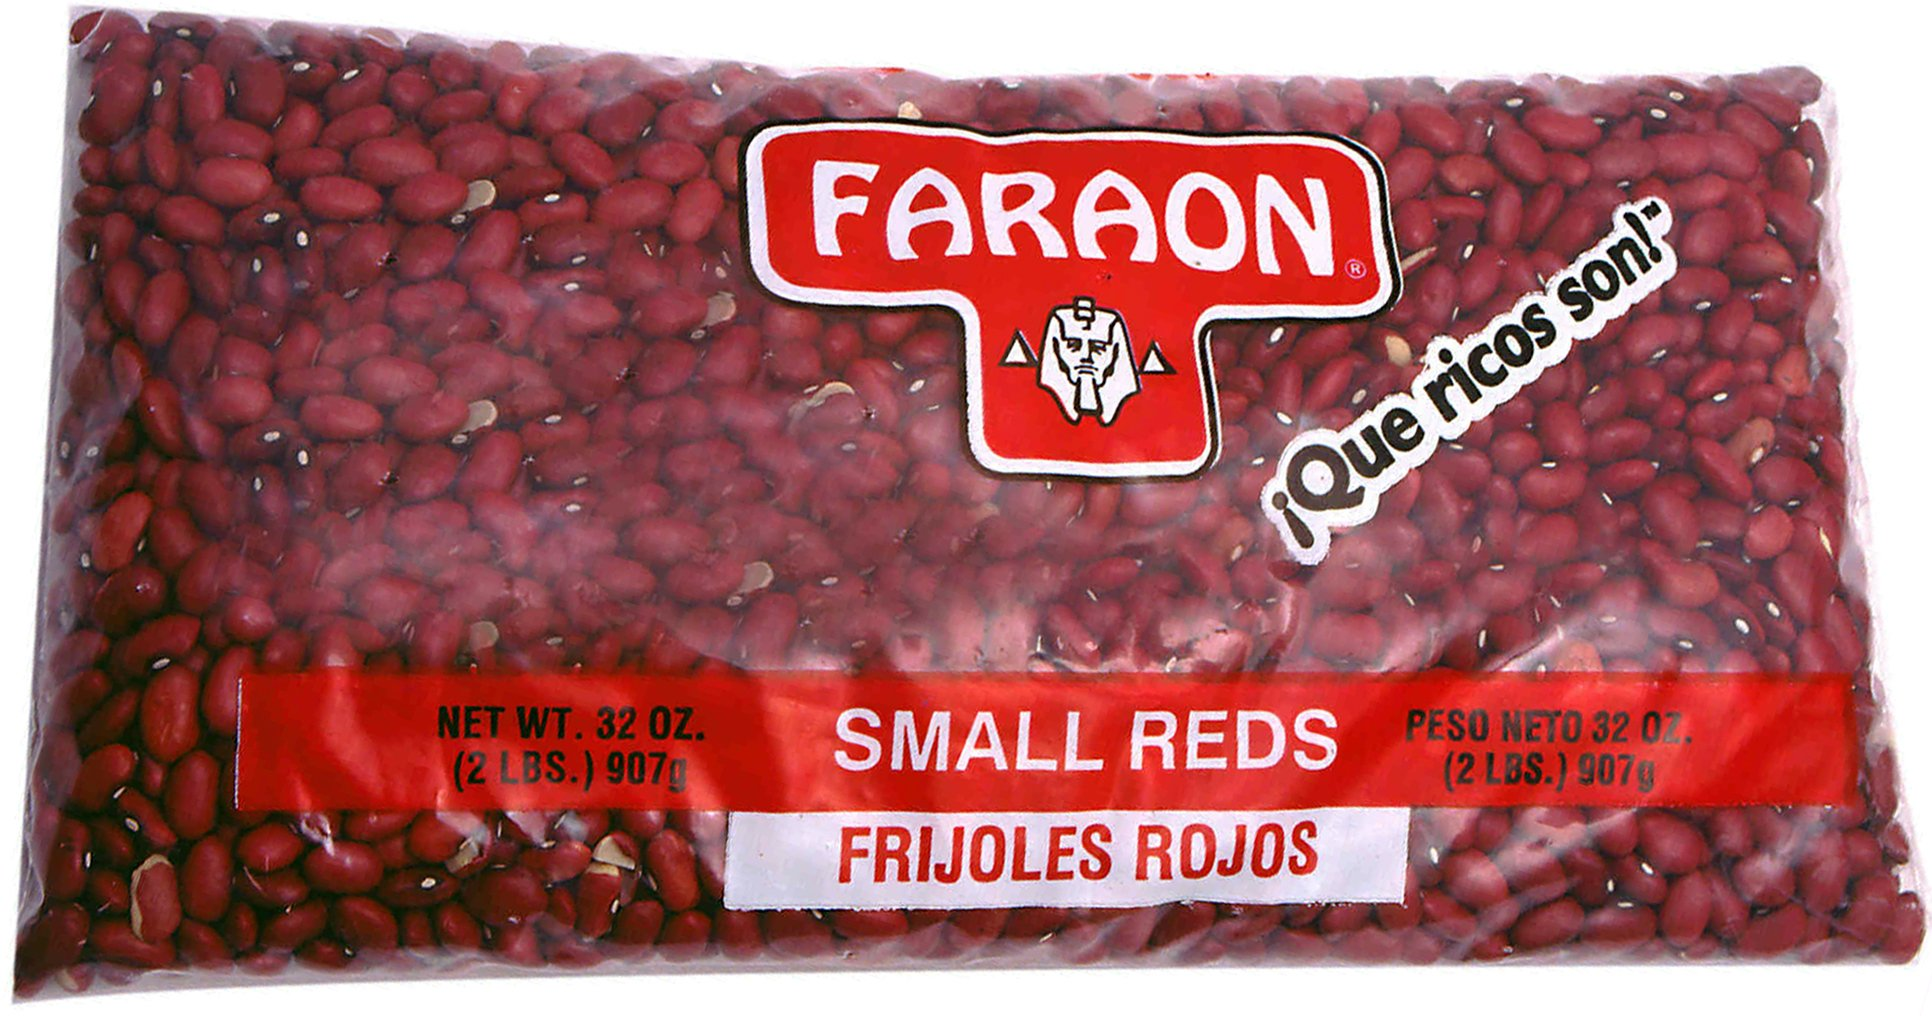 FARAON Seda Small Reds, 2 Pound (Pack of 12)